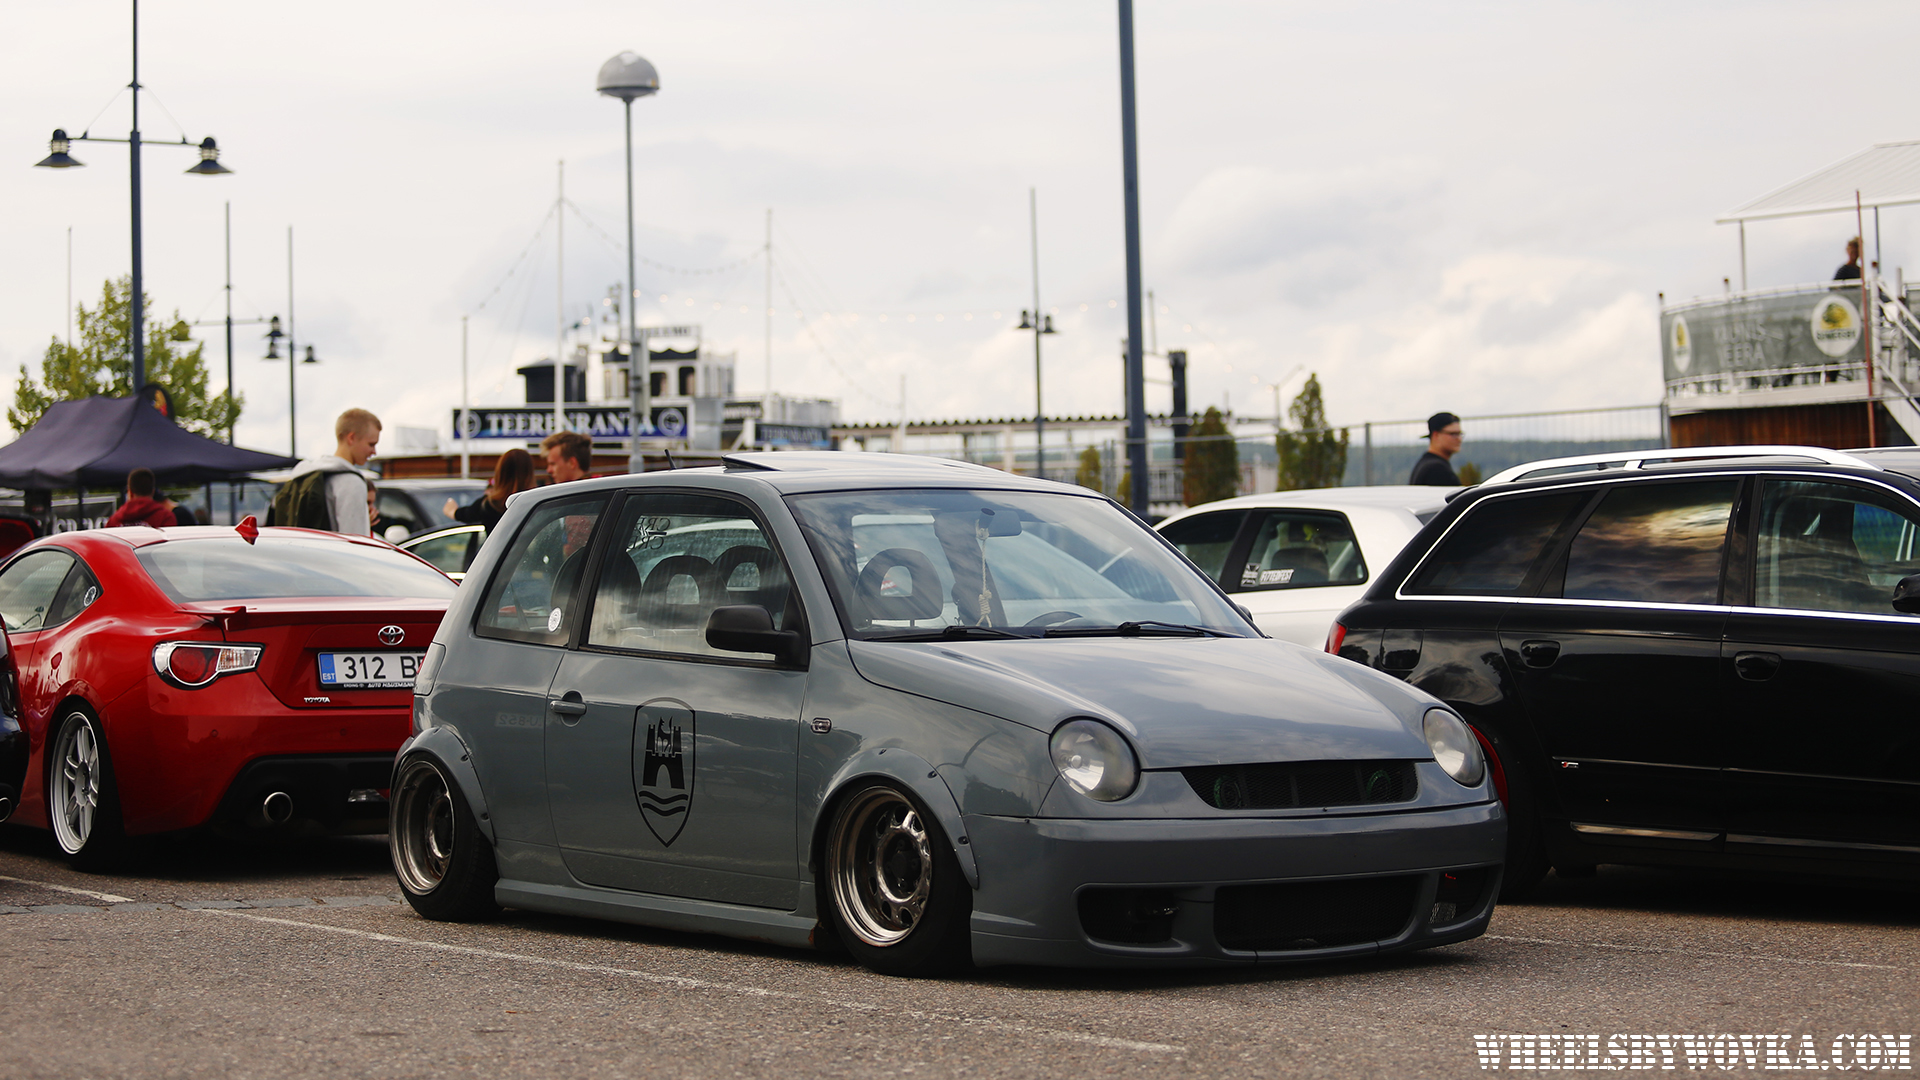 fitted-fest-lahti-finland-cdlcco-2018-by-wheelsbywovka-27